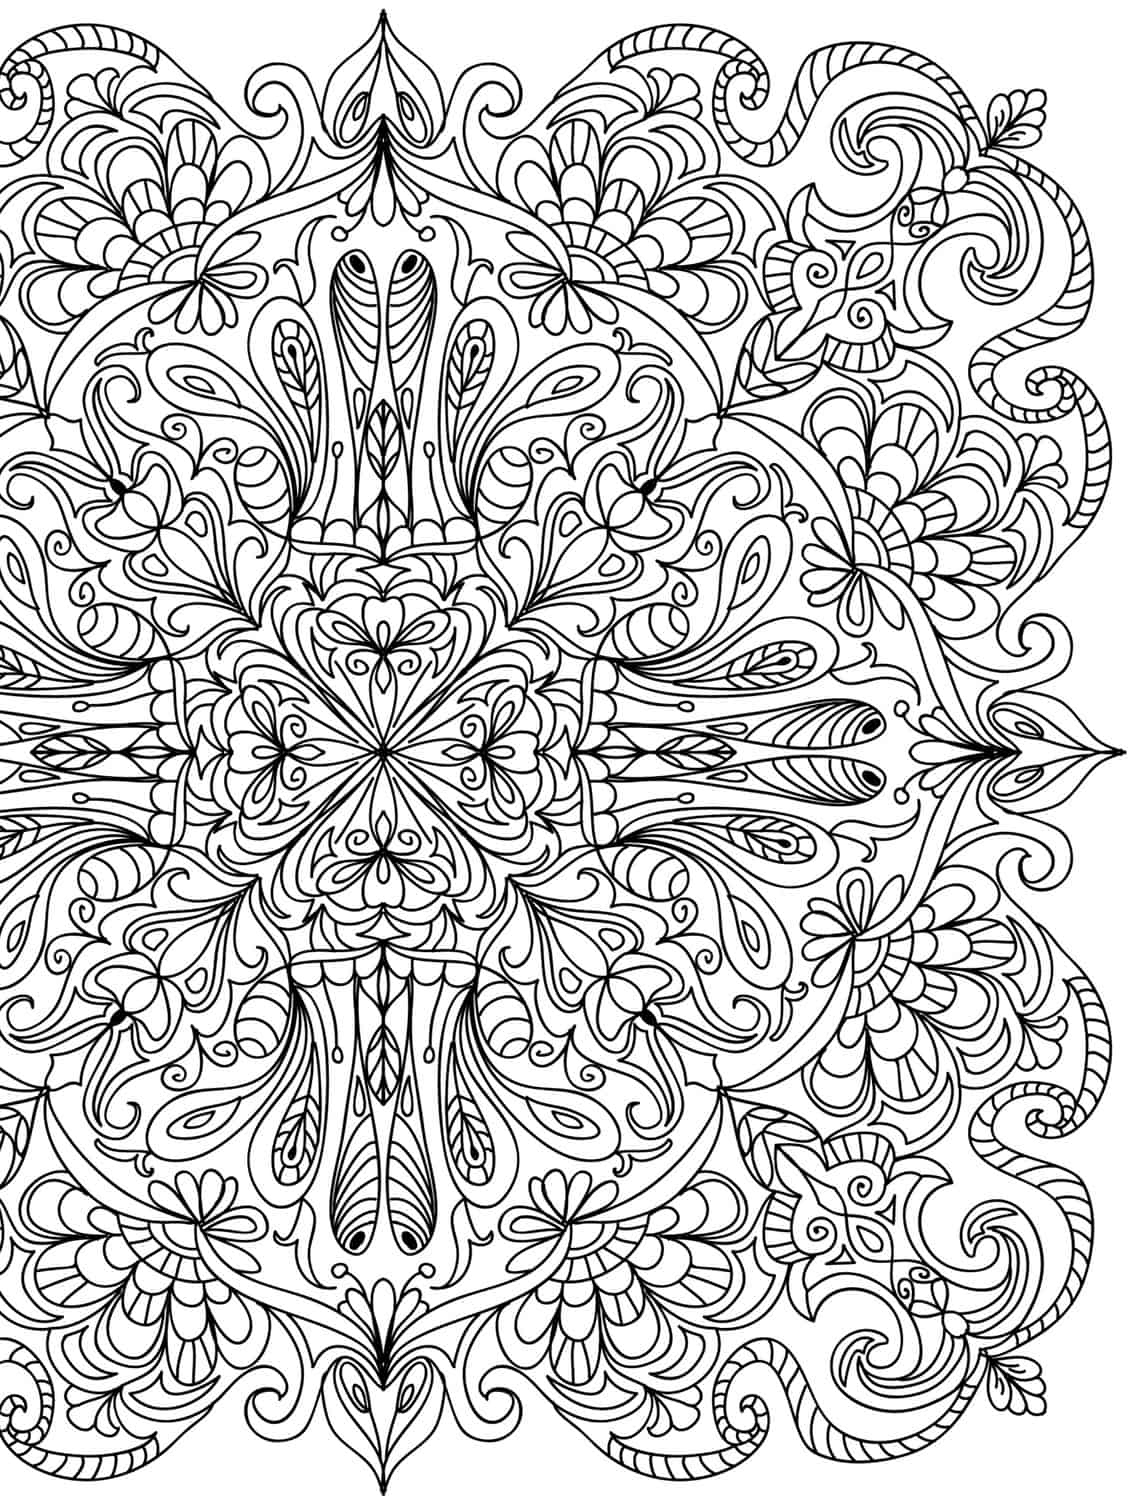 Charmant Free Printable Busy Coloring Pages For Adults Upload